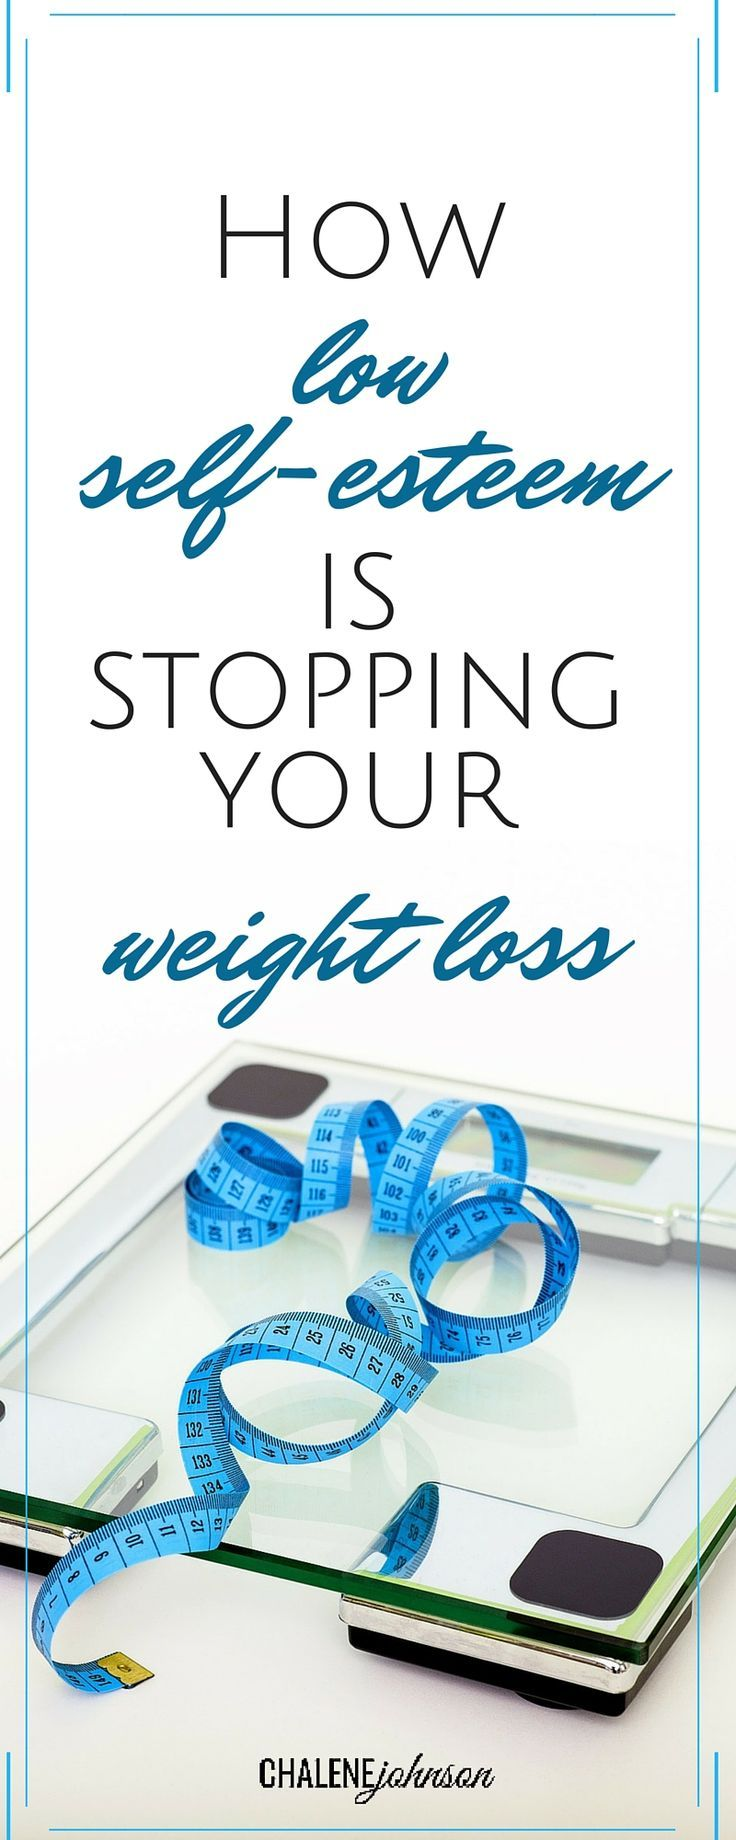 How low self esteem is stopping your weight loss